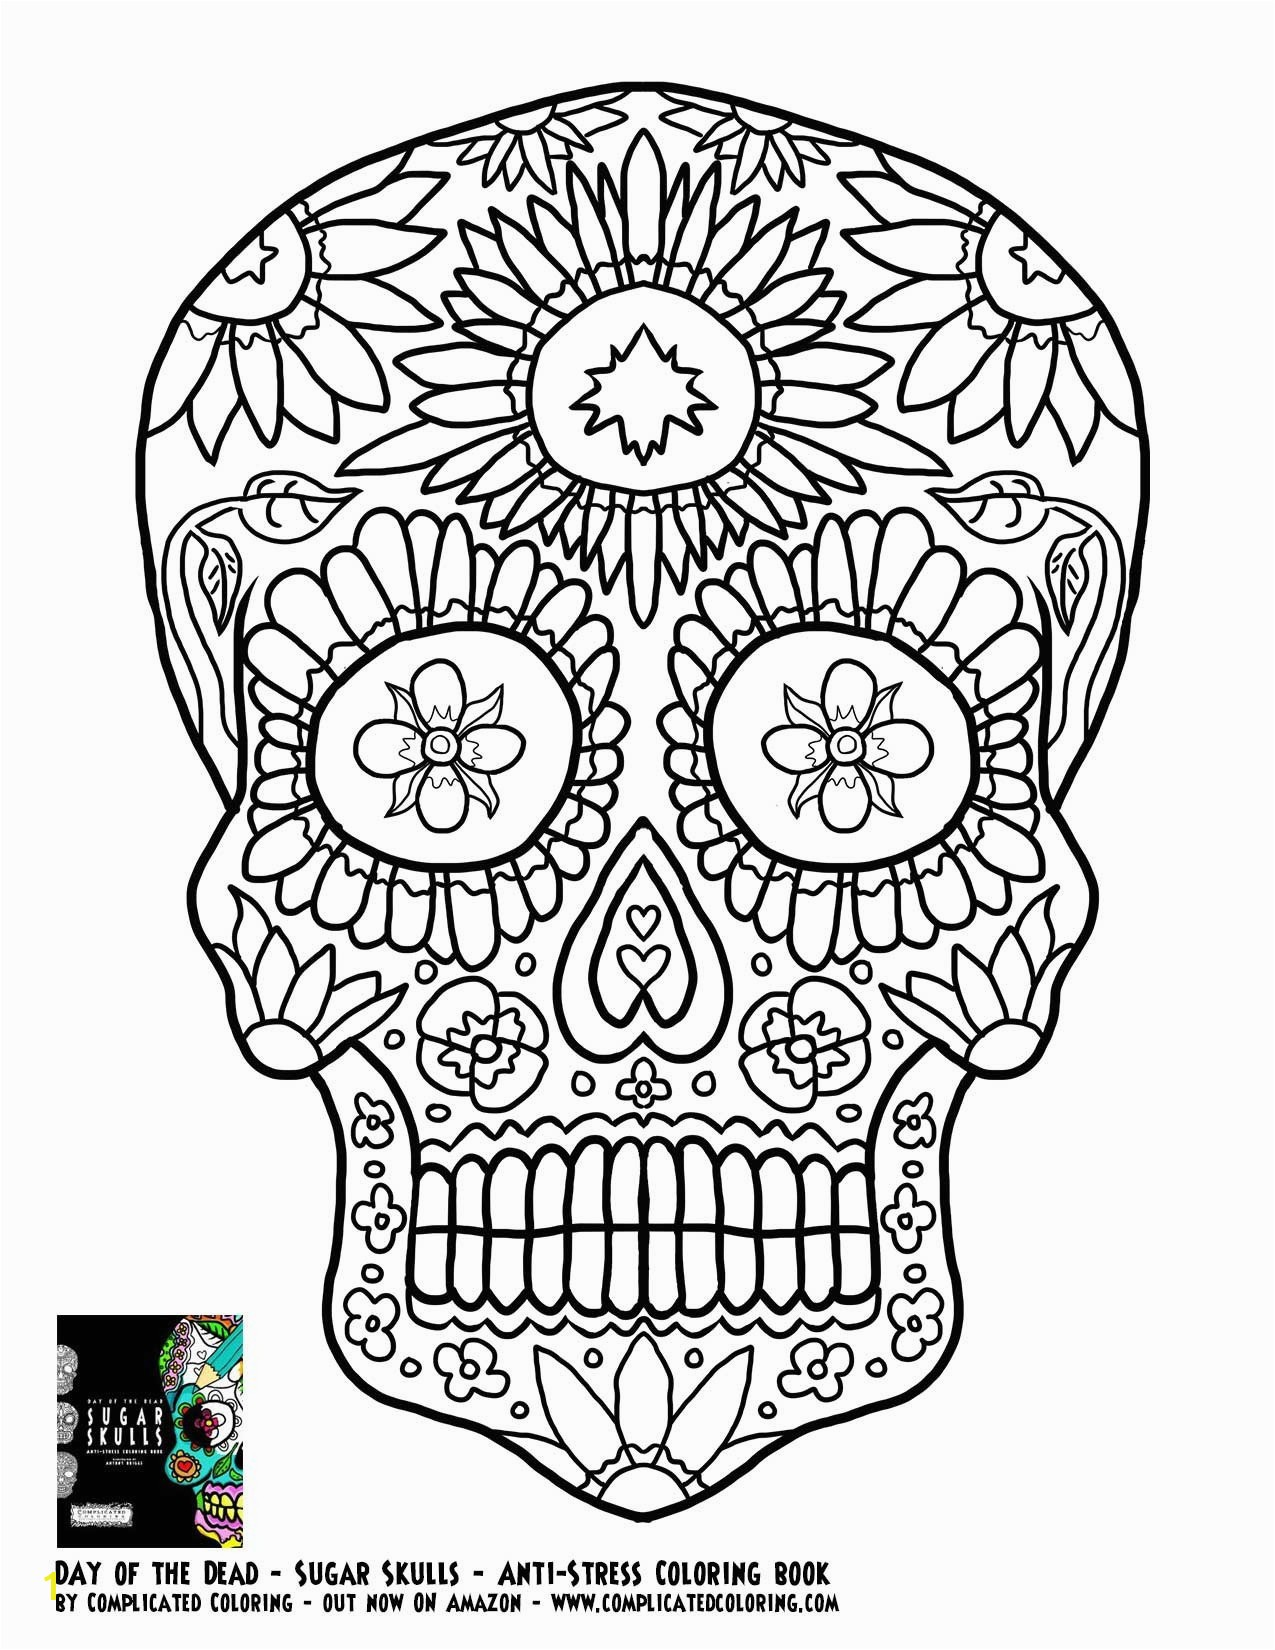 Coloring Pages Hearts with Ribbons Awesome Day the Dead Coloring Pages Fresh Cool Coloring Page for Adult Od